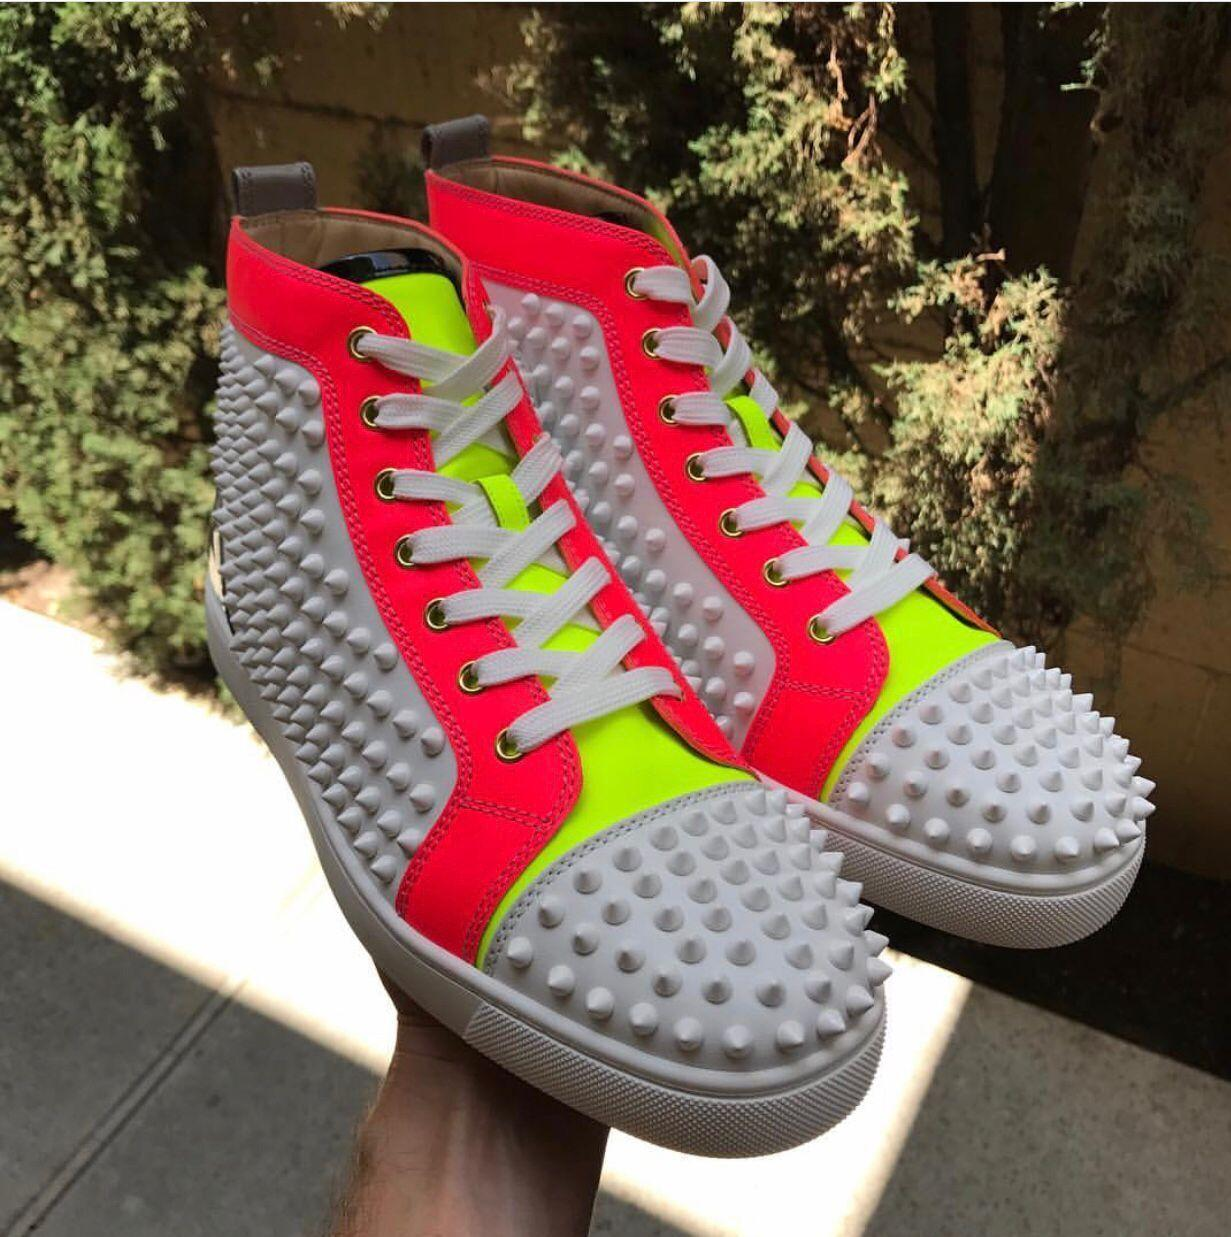 Luxurious Red Bottom Men,Women Shoes Genuine Leather High Top Sneakers Shoes,Outdoor Flat With Walking Party Shoes